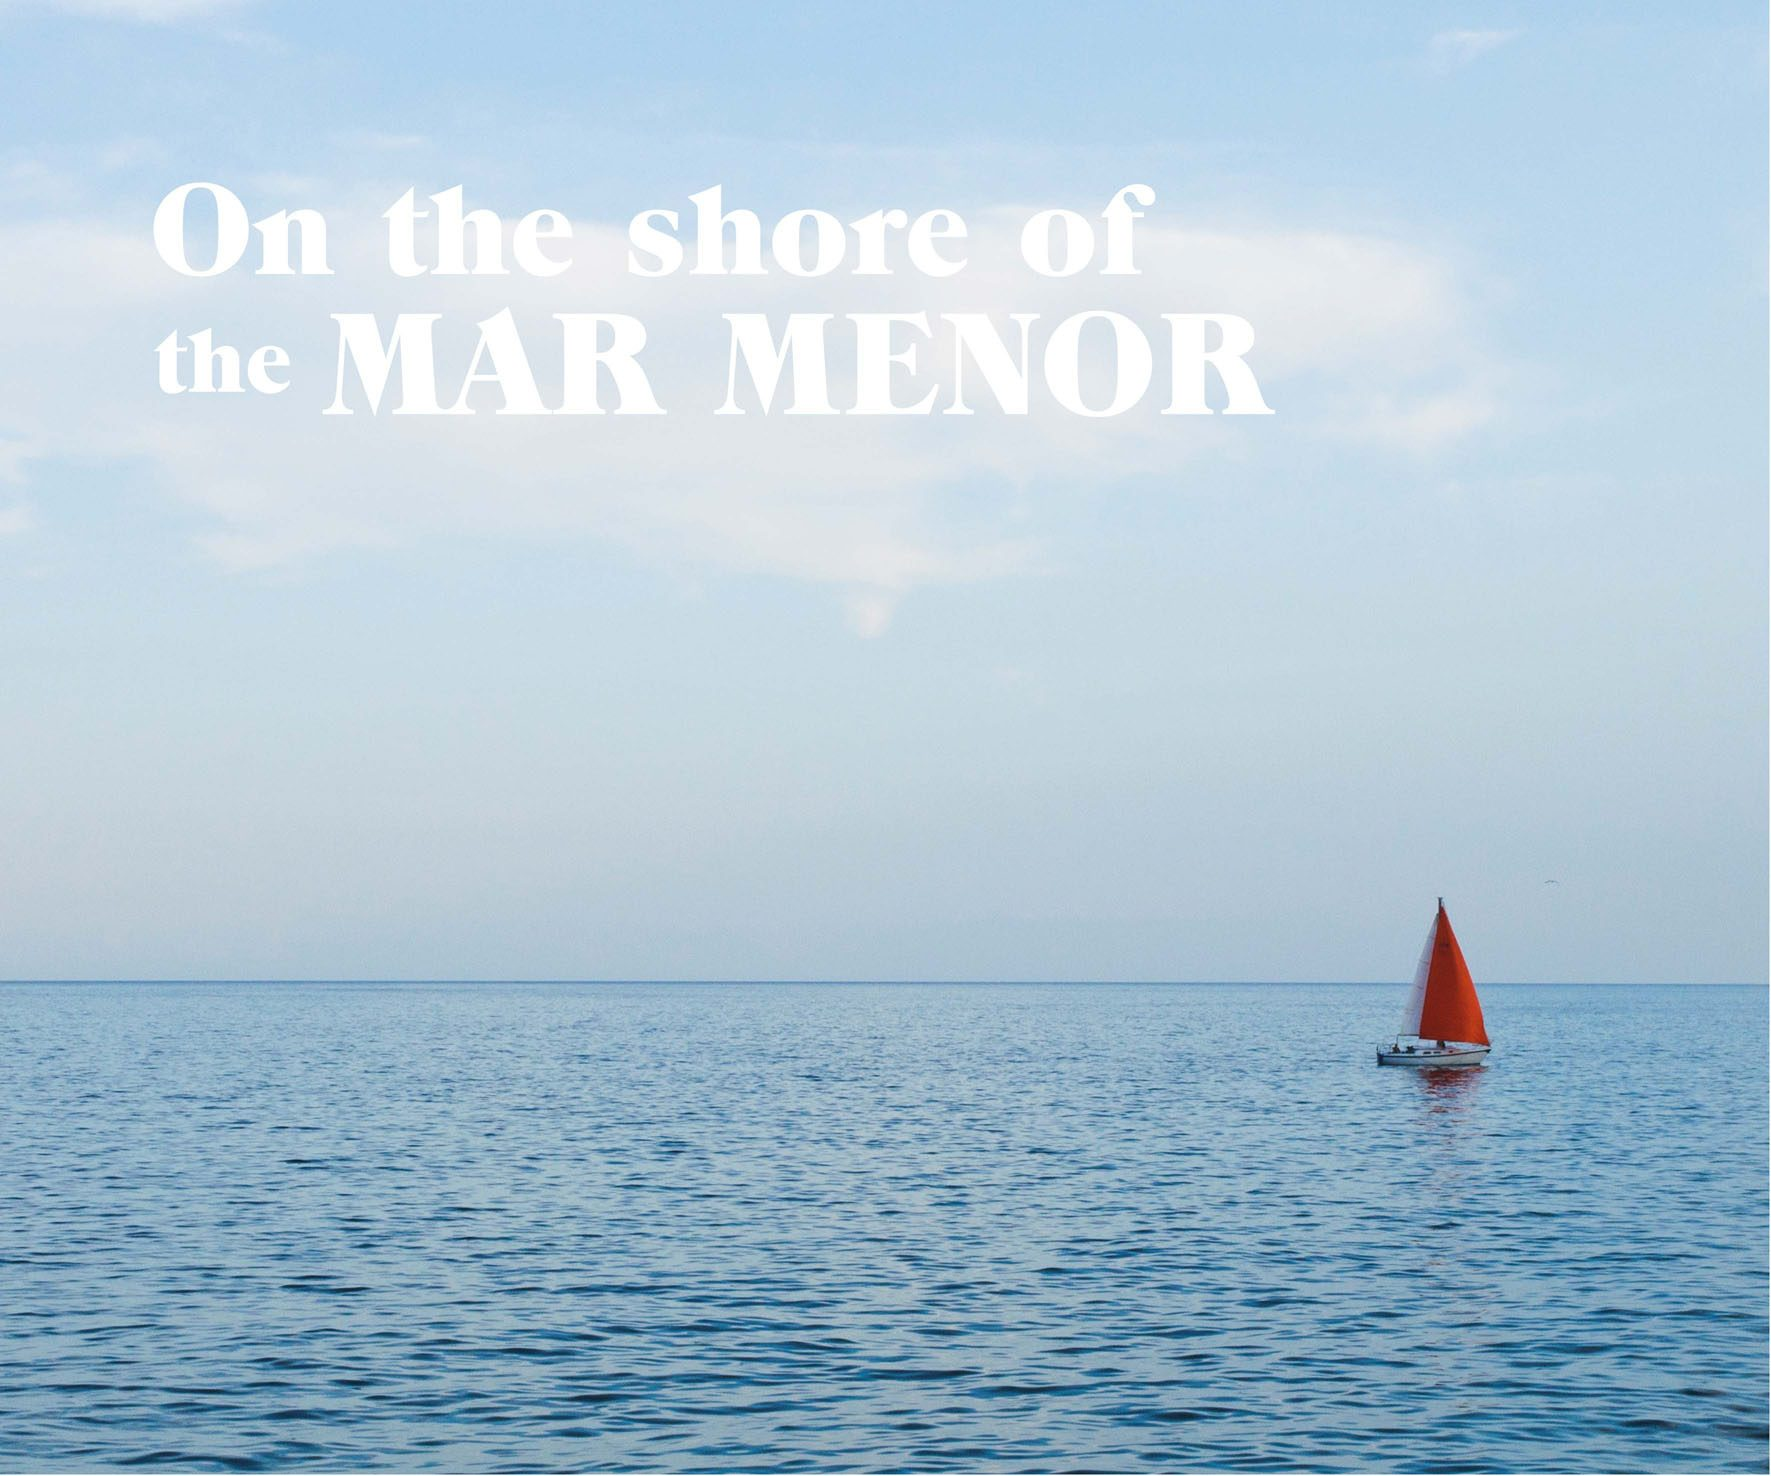 On the shore of the Mar menor